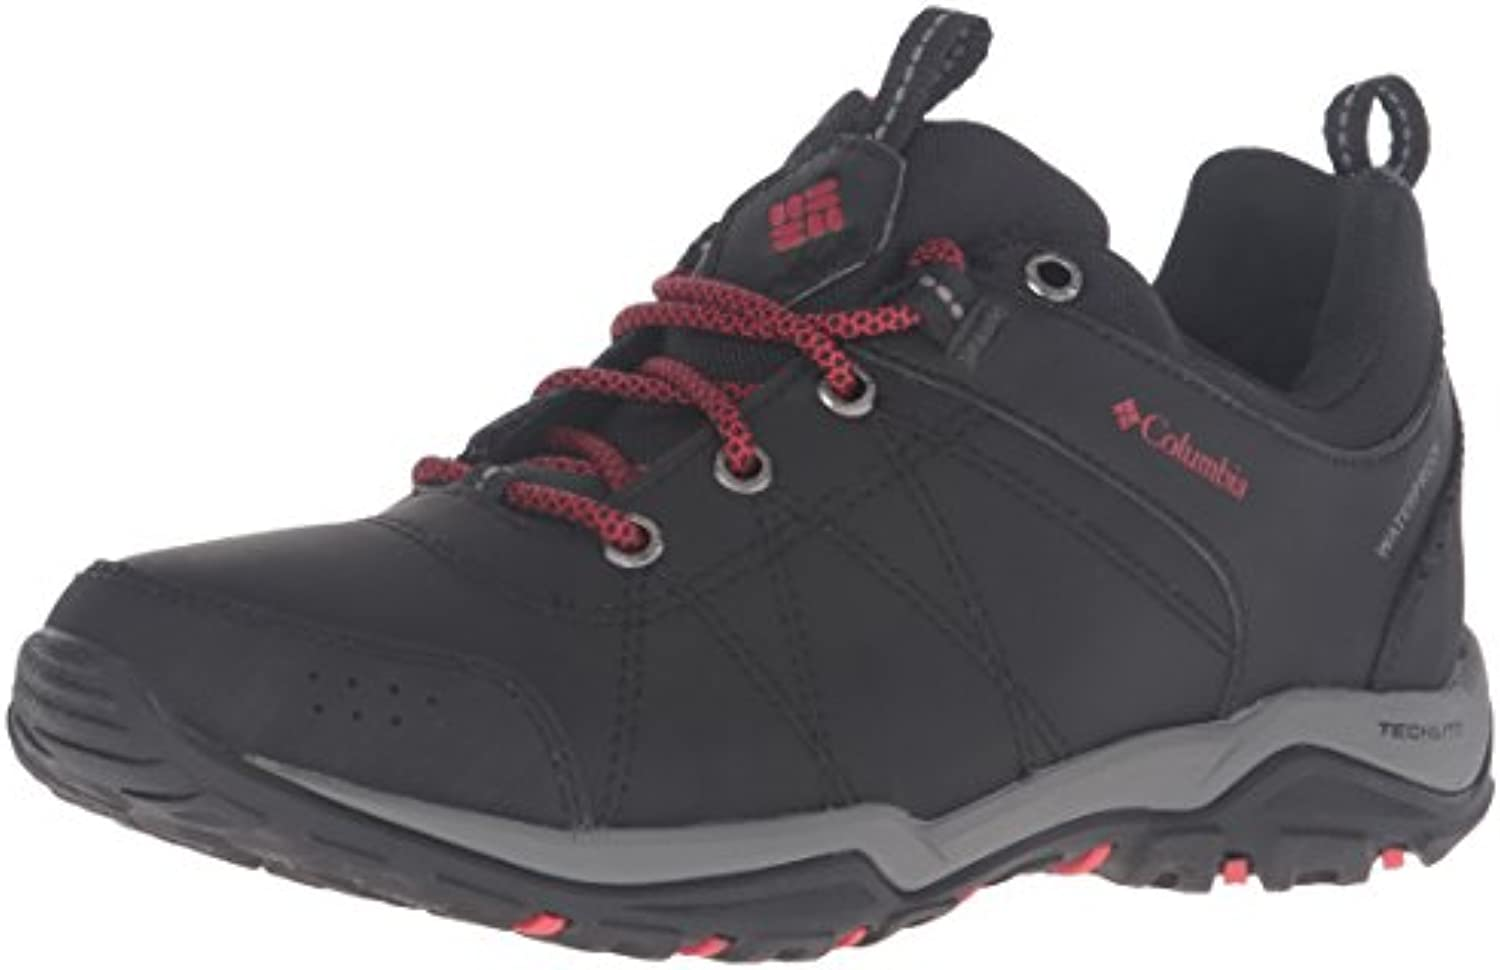 Columbia Fire Venture Low, Chaussures Chaussures Chaussures Multisport Outdoor FemmeB0183LX4BOParent 761c4f